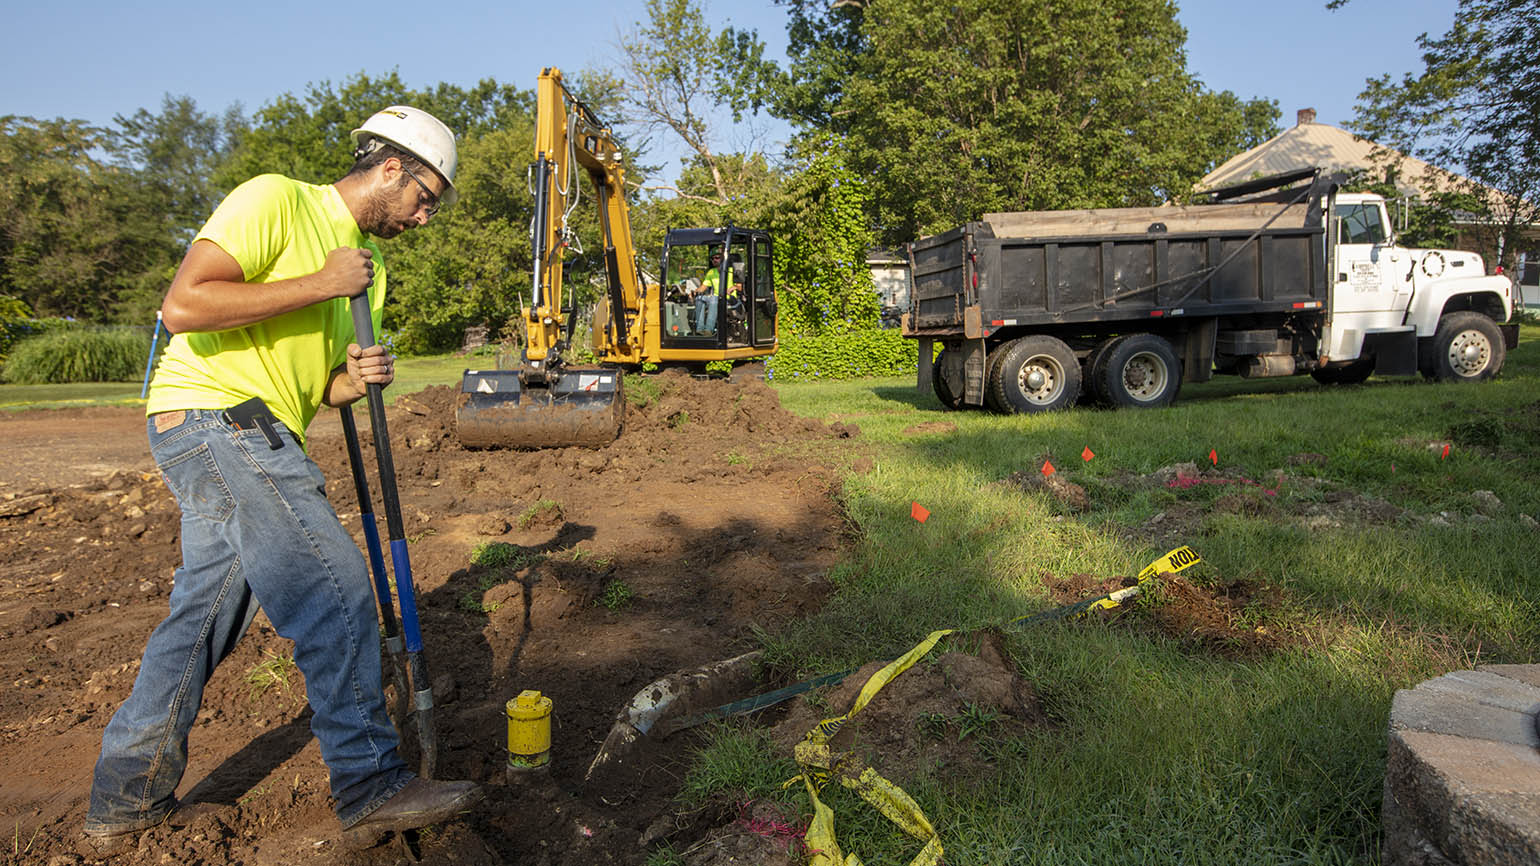 Crews replace soil as part of remediation efforts in St. Francois County. Doe Run continues to make progress on historic mine site remediation projects.